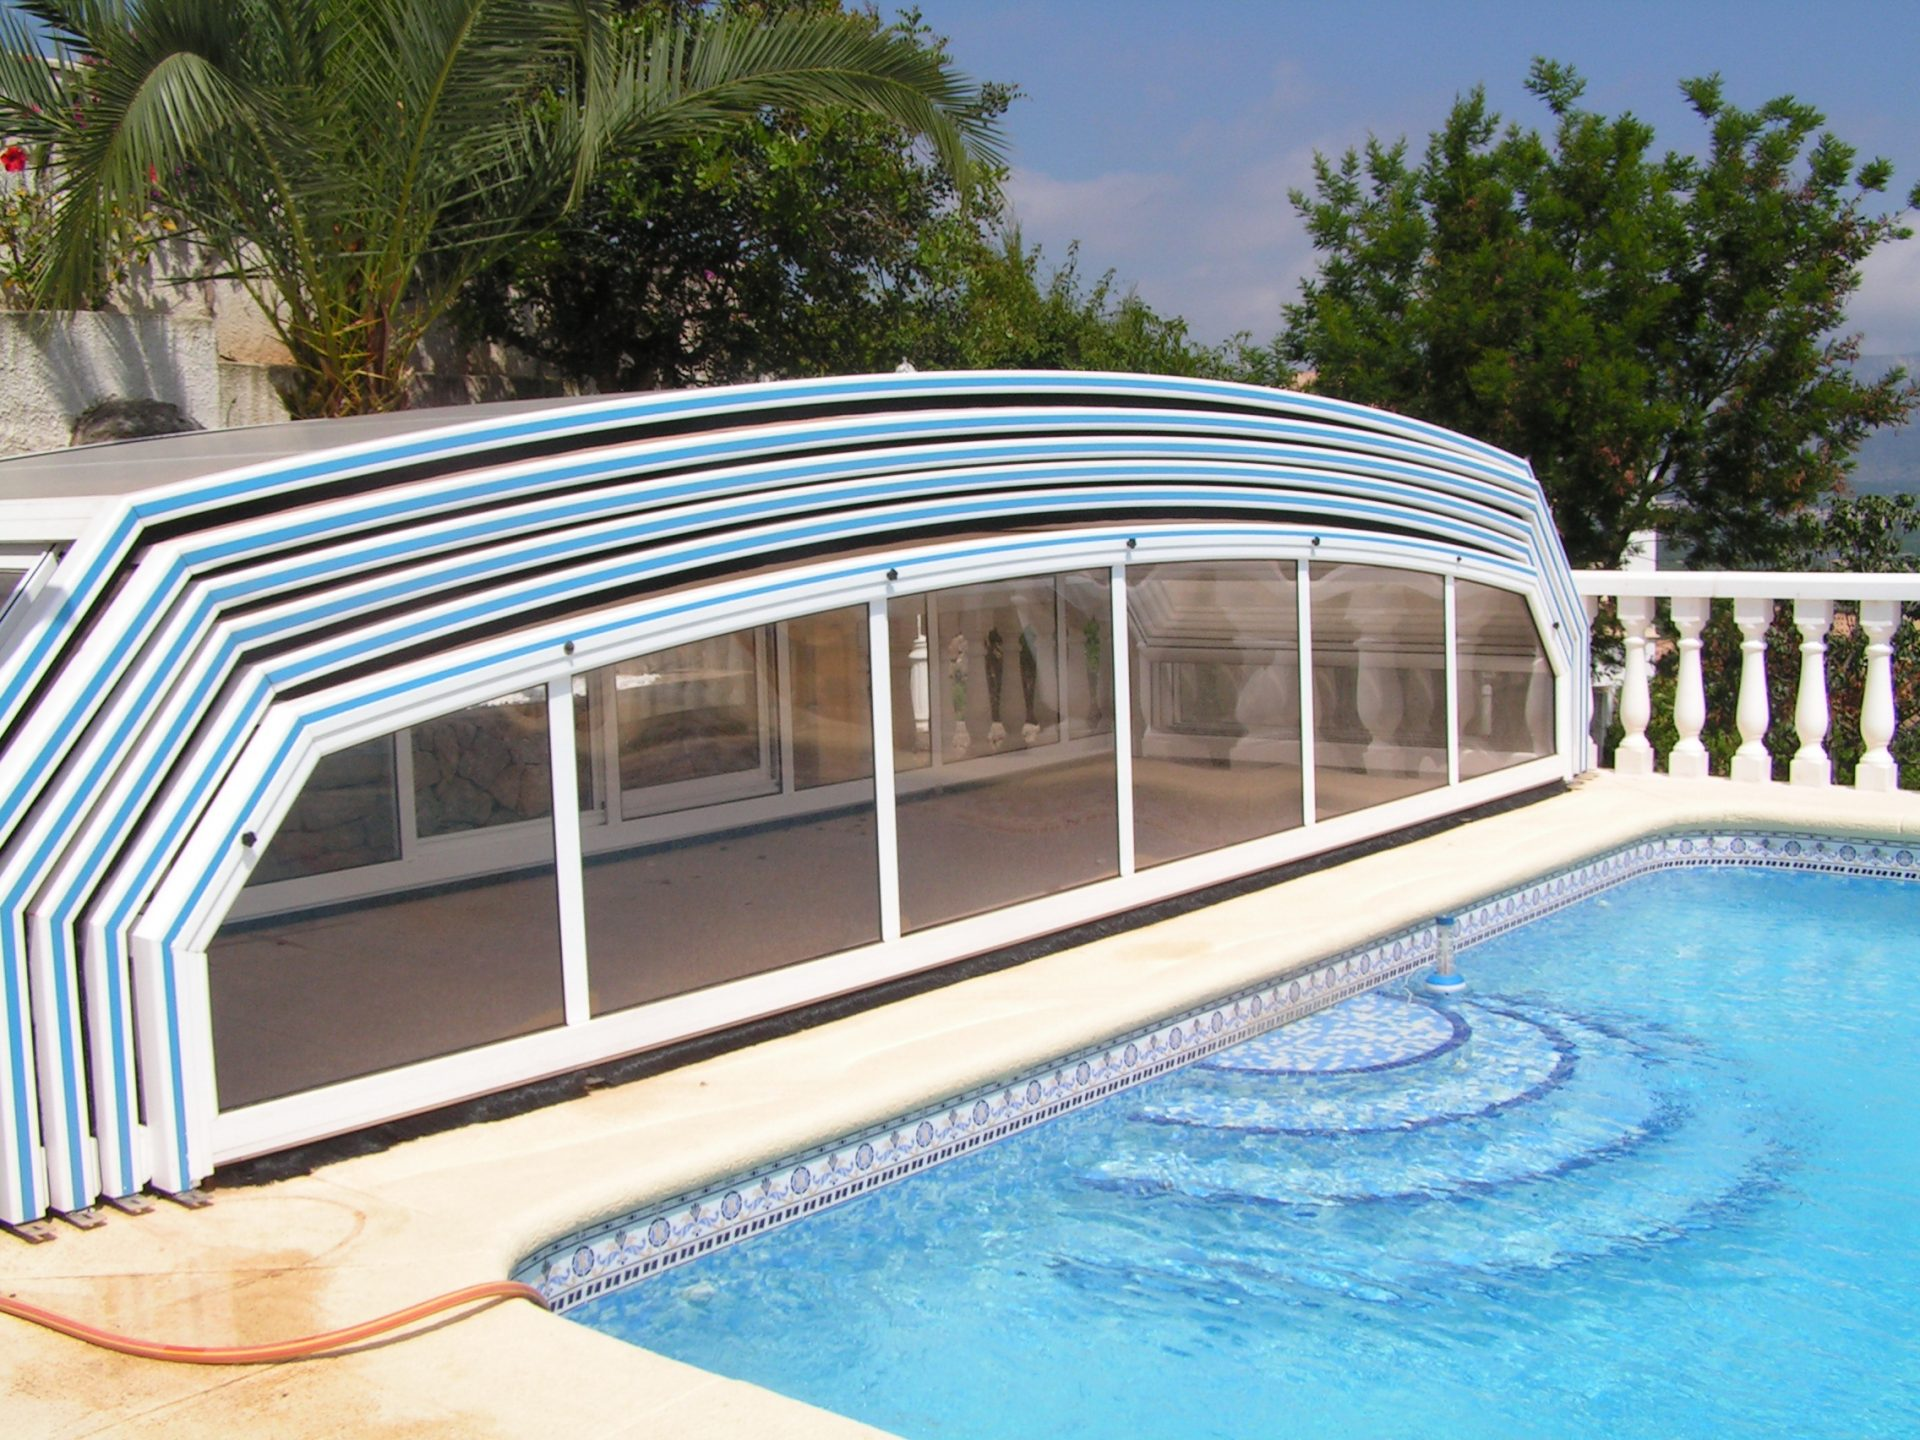 Abri piscine paris t lescopique sur roulette for Renoval abris de piscine